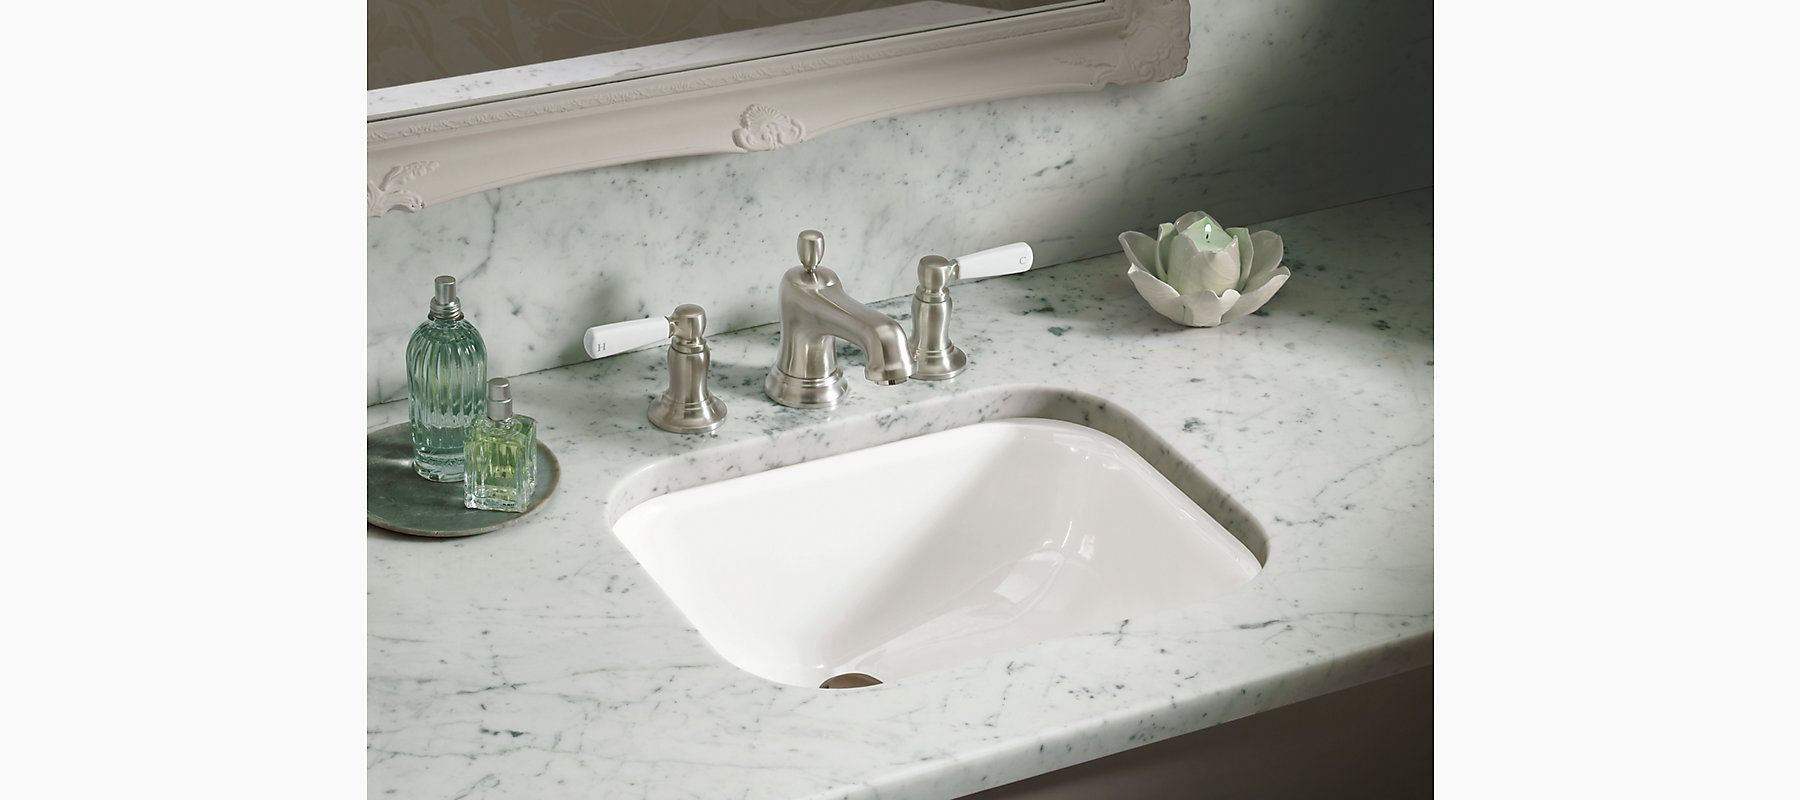 Pin by justine sharrock on Bathroom | Pinterest | Sinks and Faucet